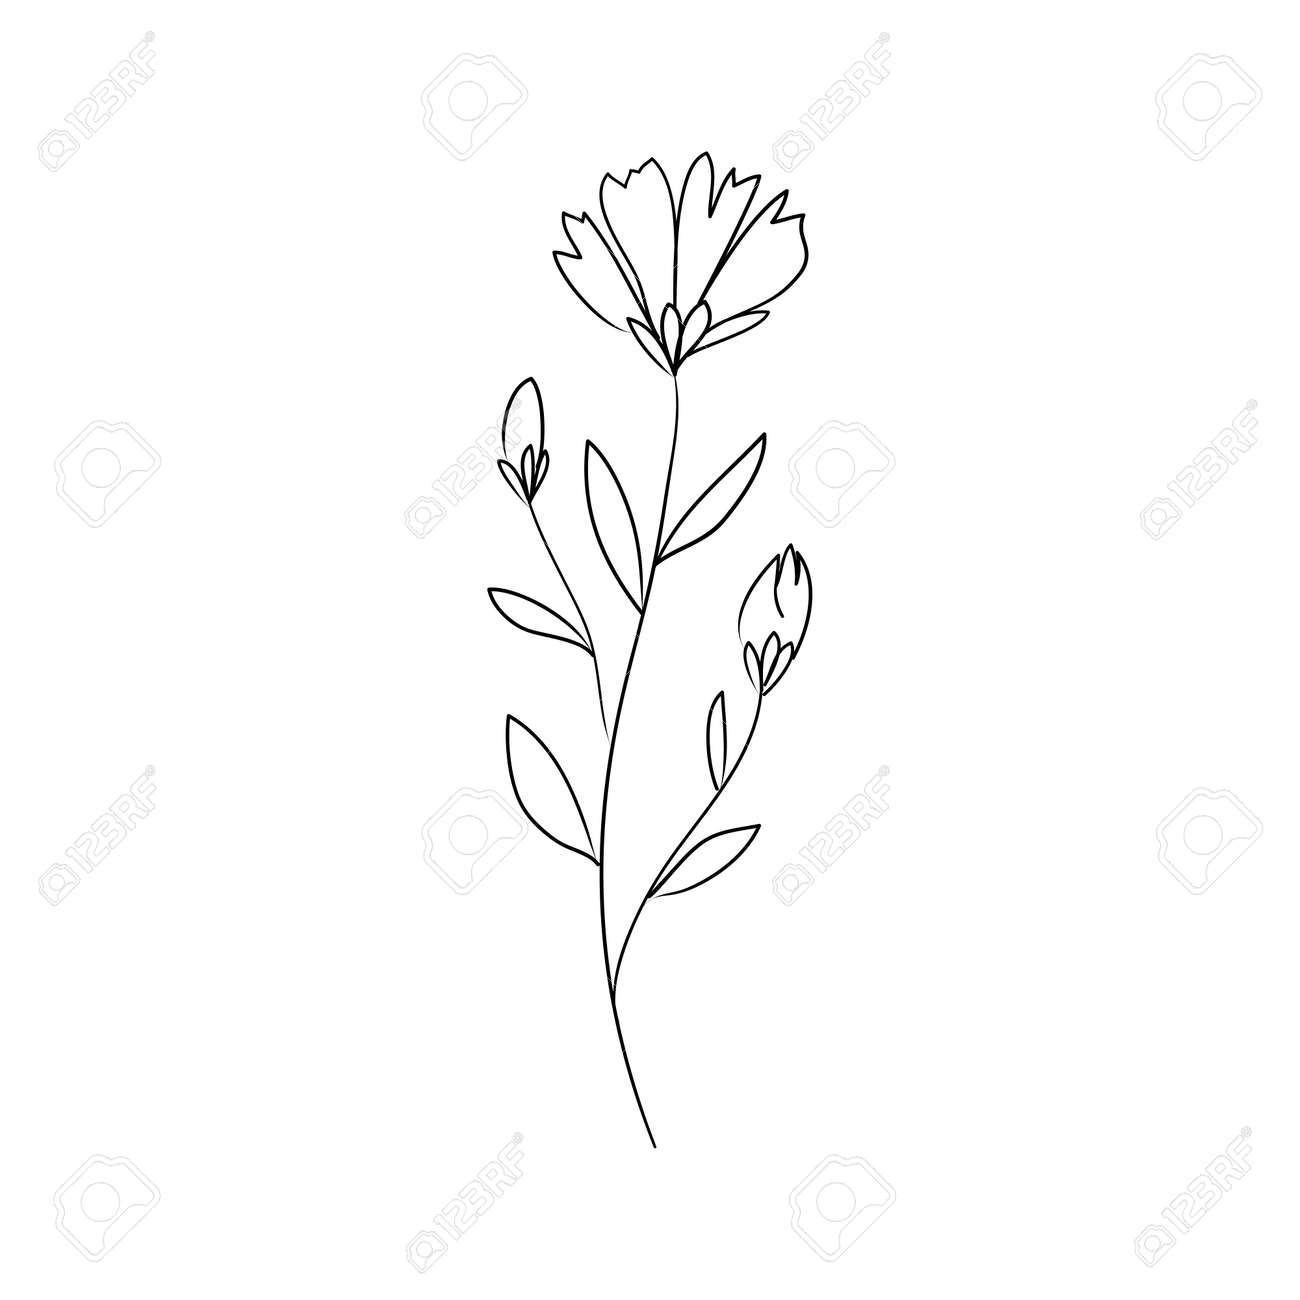 Sketch a leaf branch by hand on an isolated background. Vector, illustration - 168291201